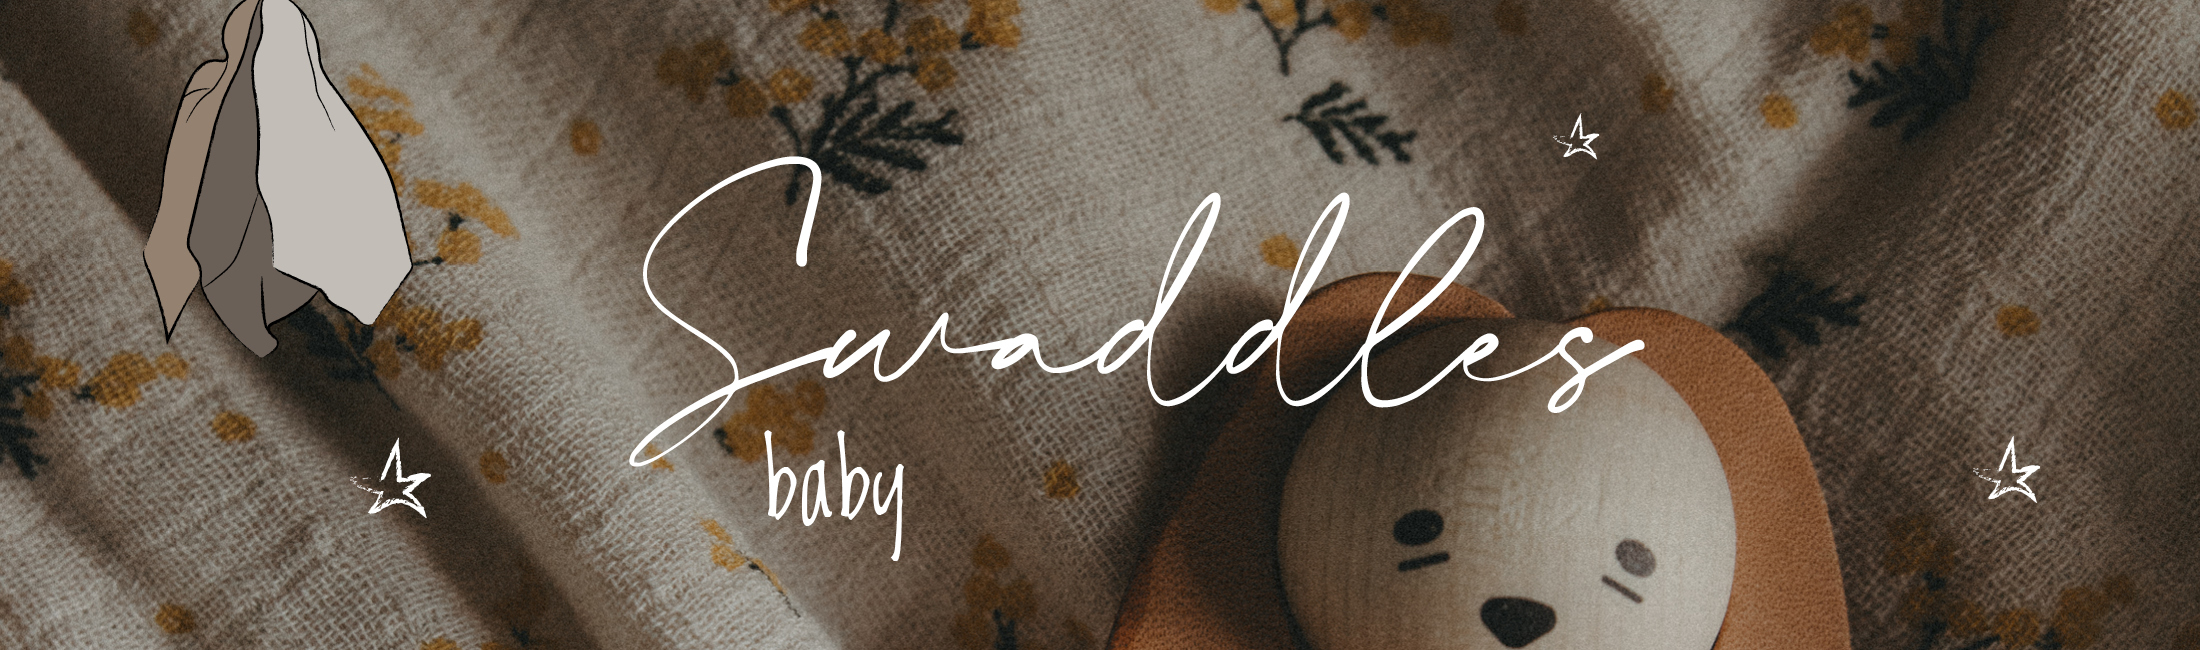 Baby - Swaddles